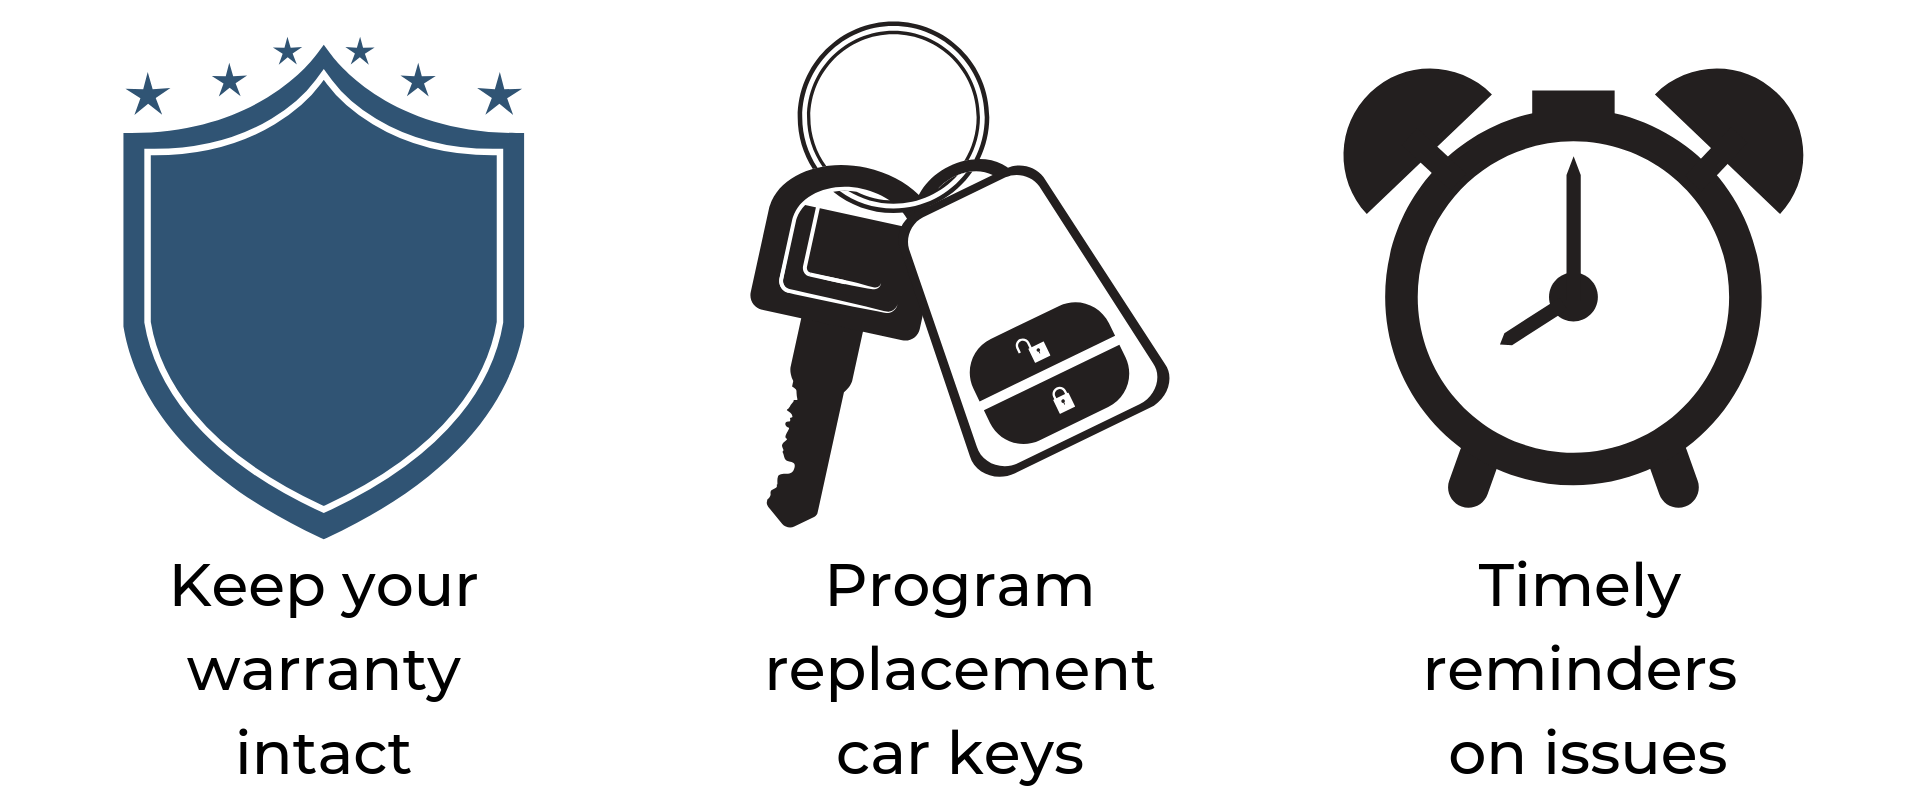 Warranty, replacement keys and a reminder on issues